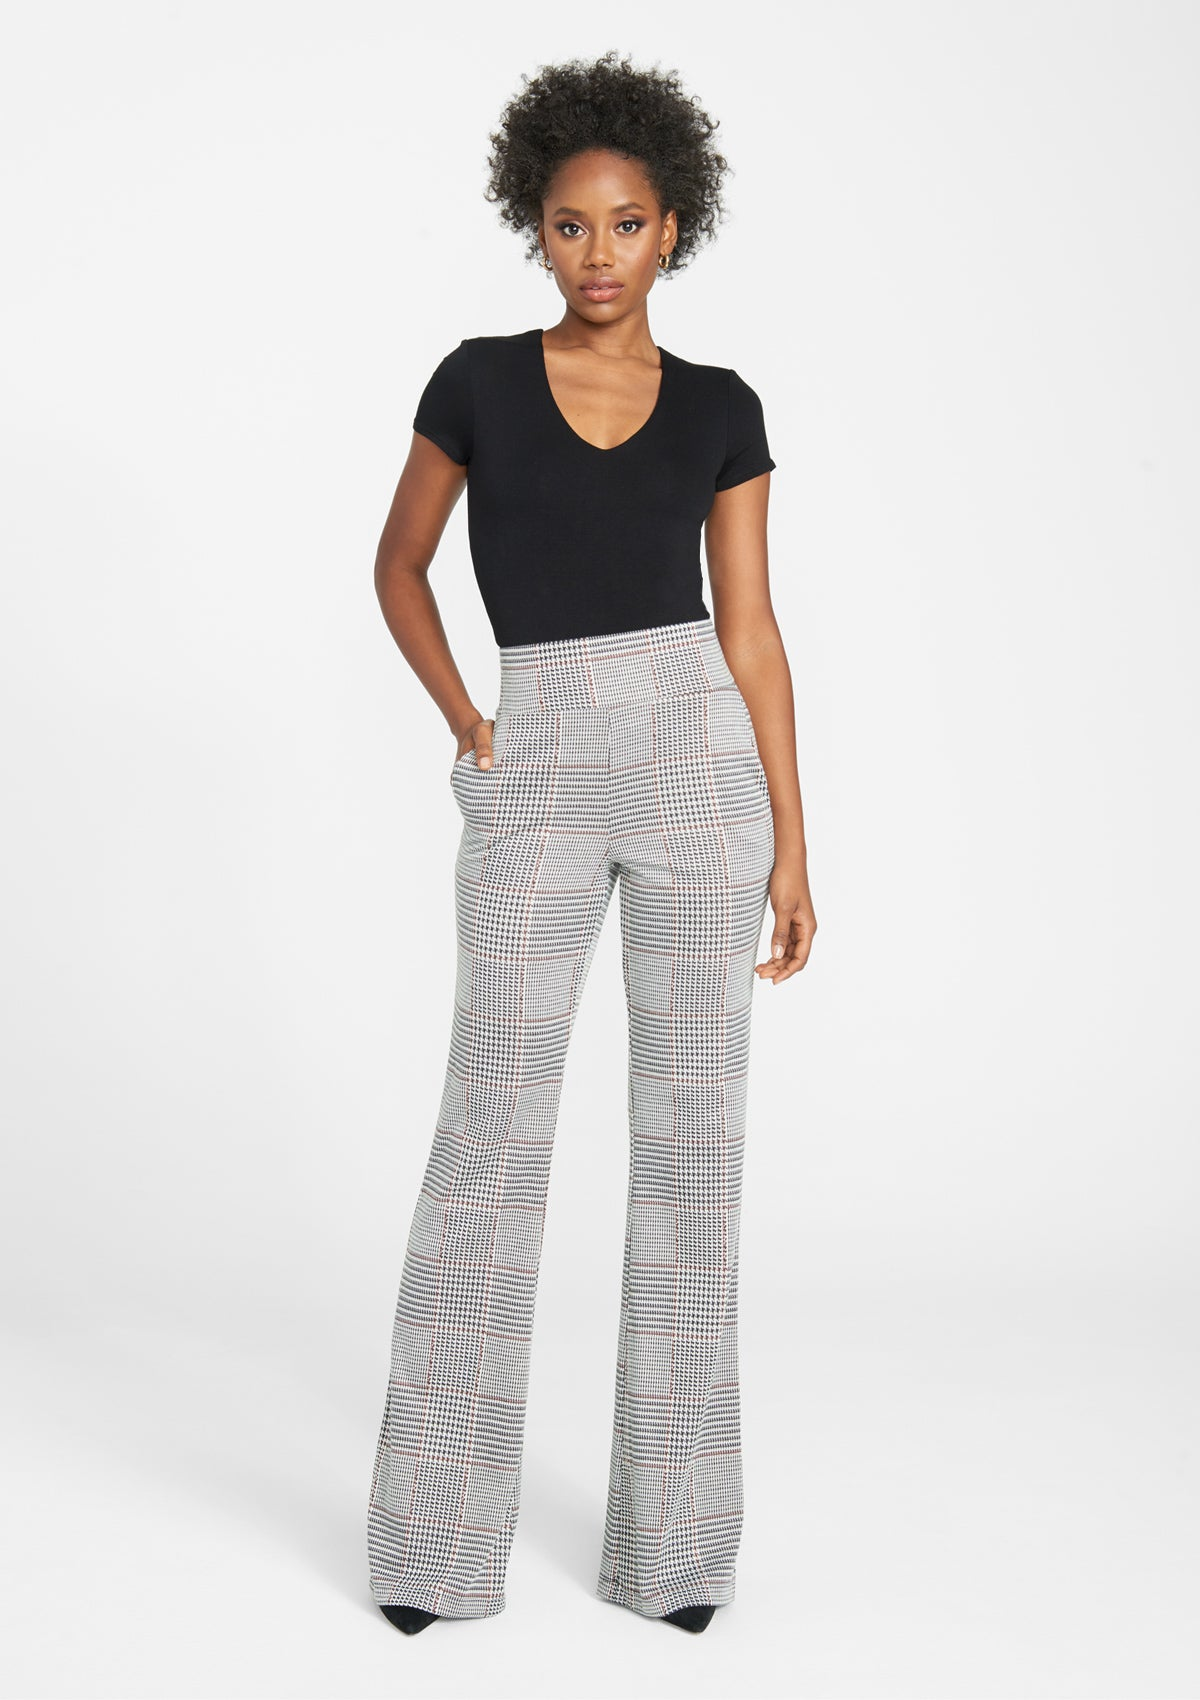 Alloy Apparel Tall Booty Knit Flare Pants for Women in Black Wine Size 2XL   Polyester